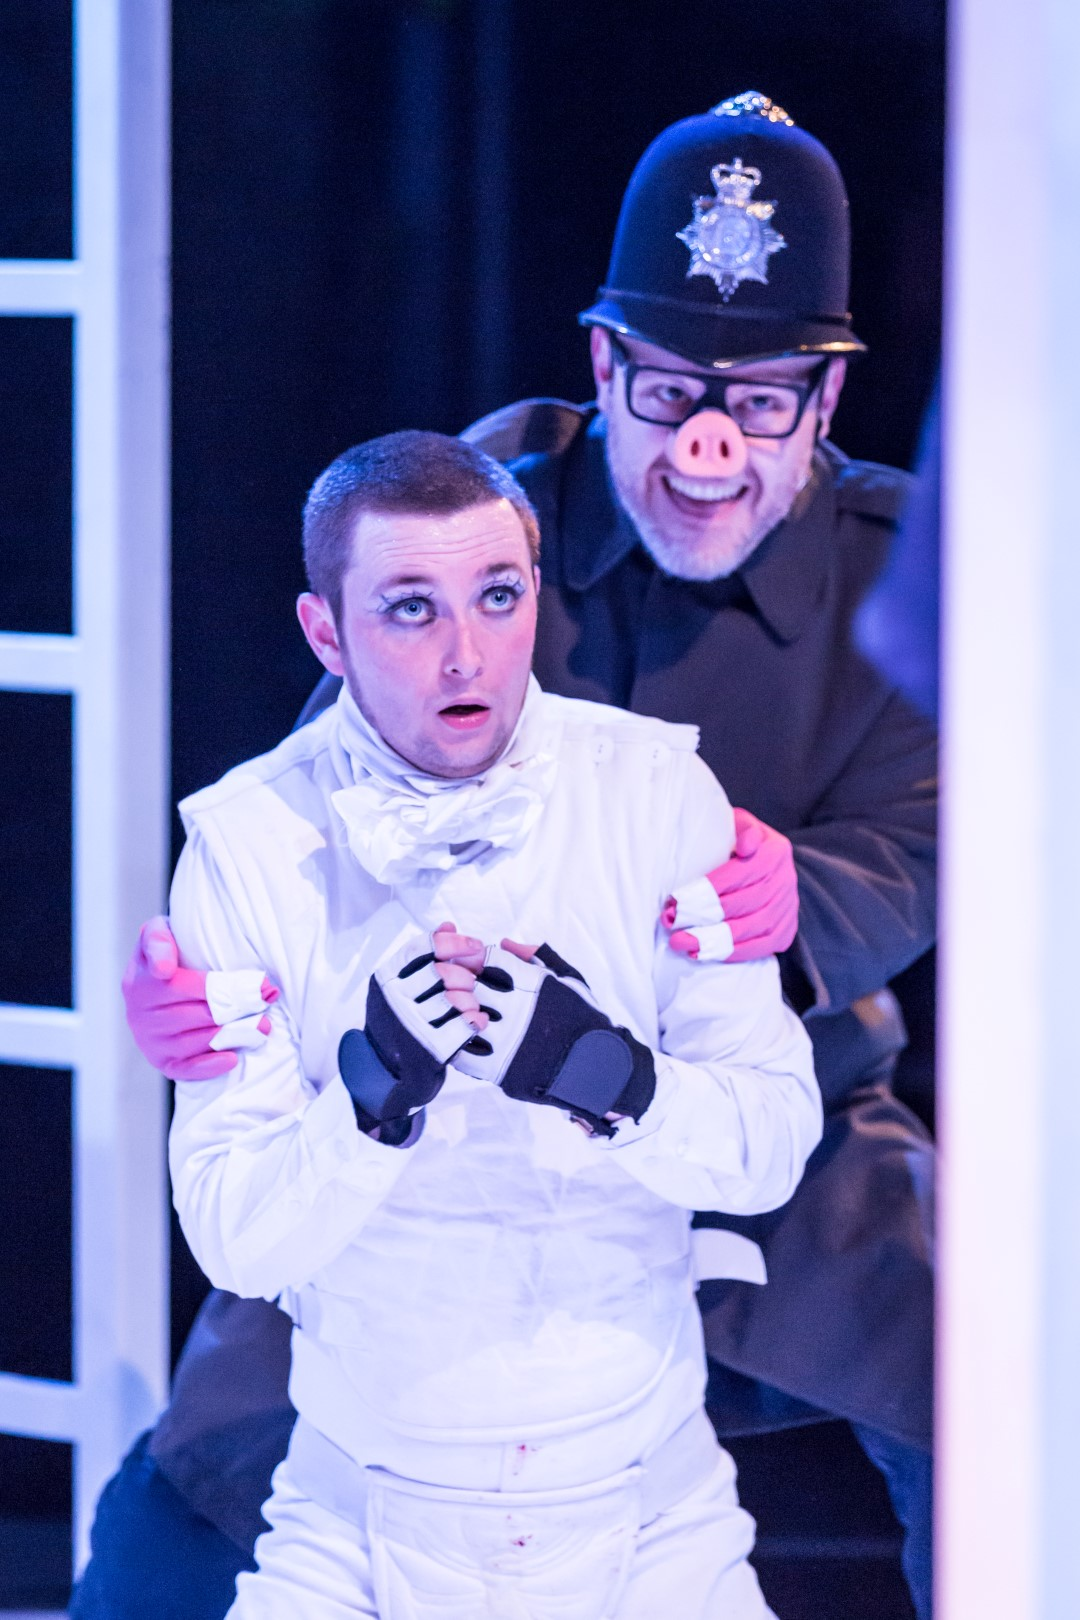 George Caple and Liam Tobin in scene from 'A Clockwork Orange'. Photograph by Marc Brenner